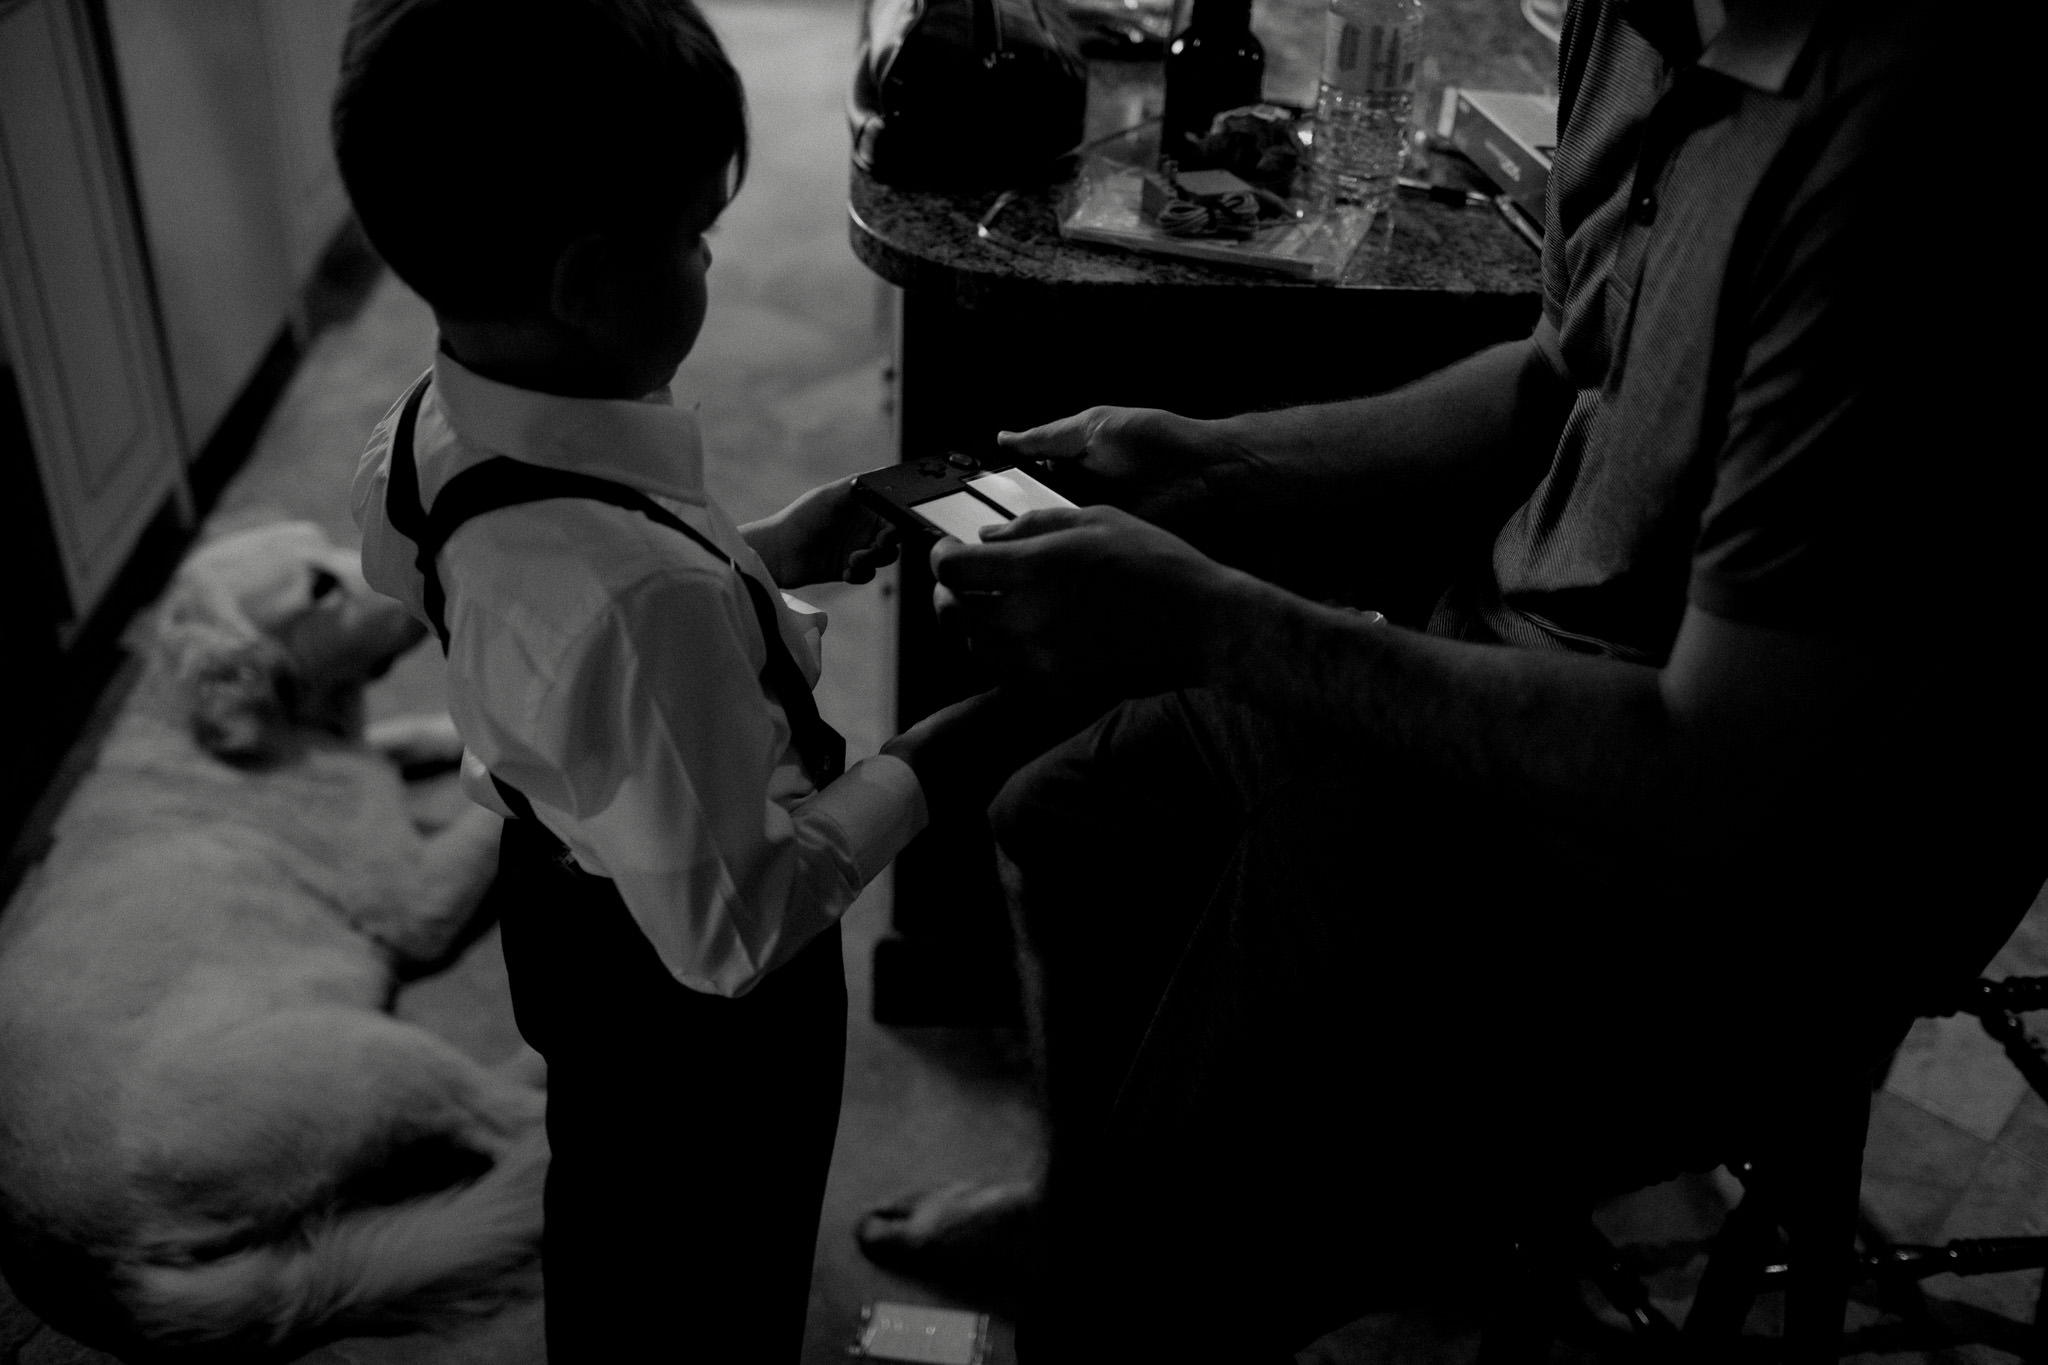 wedding ring bearer playing video games